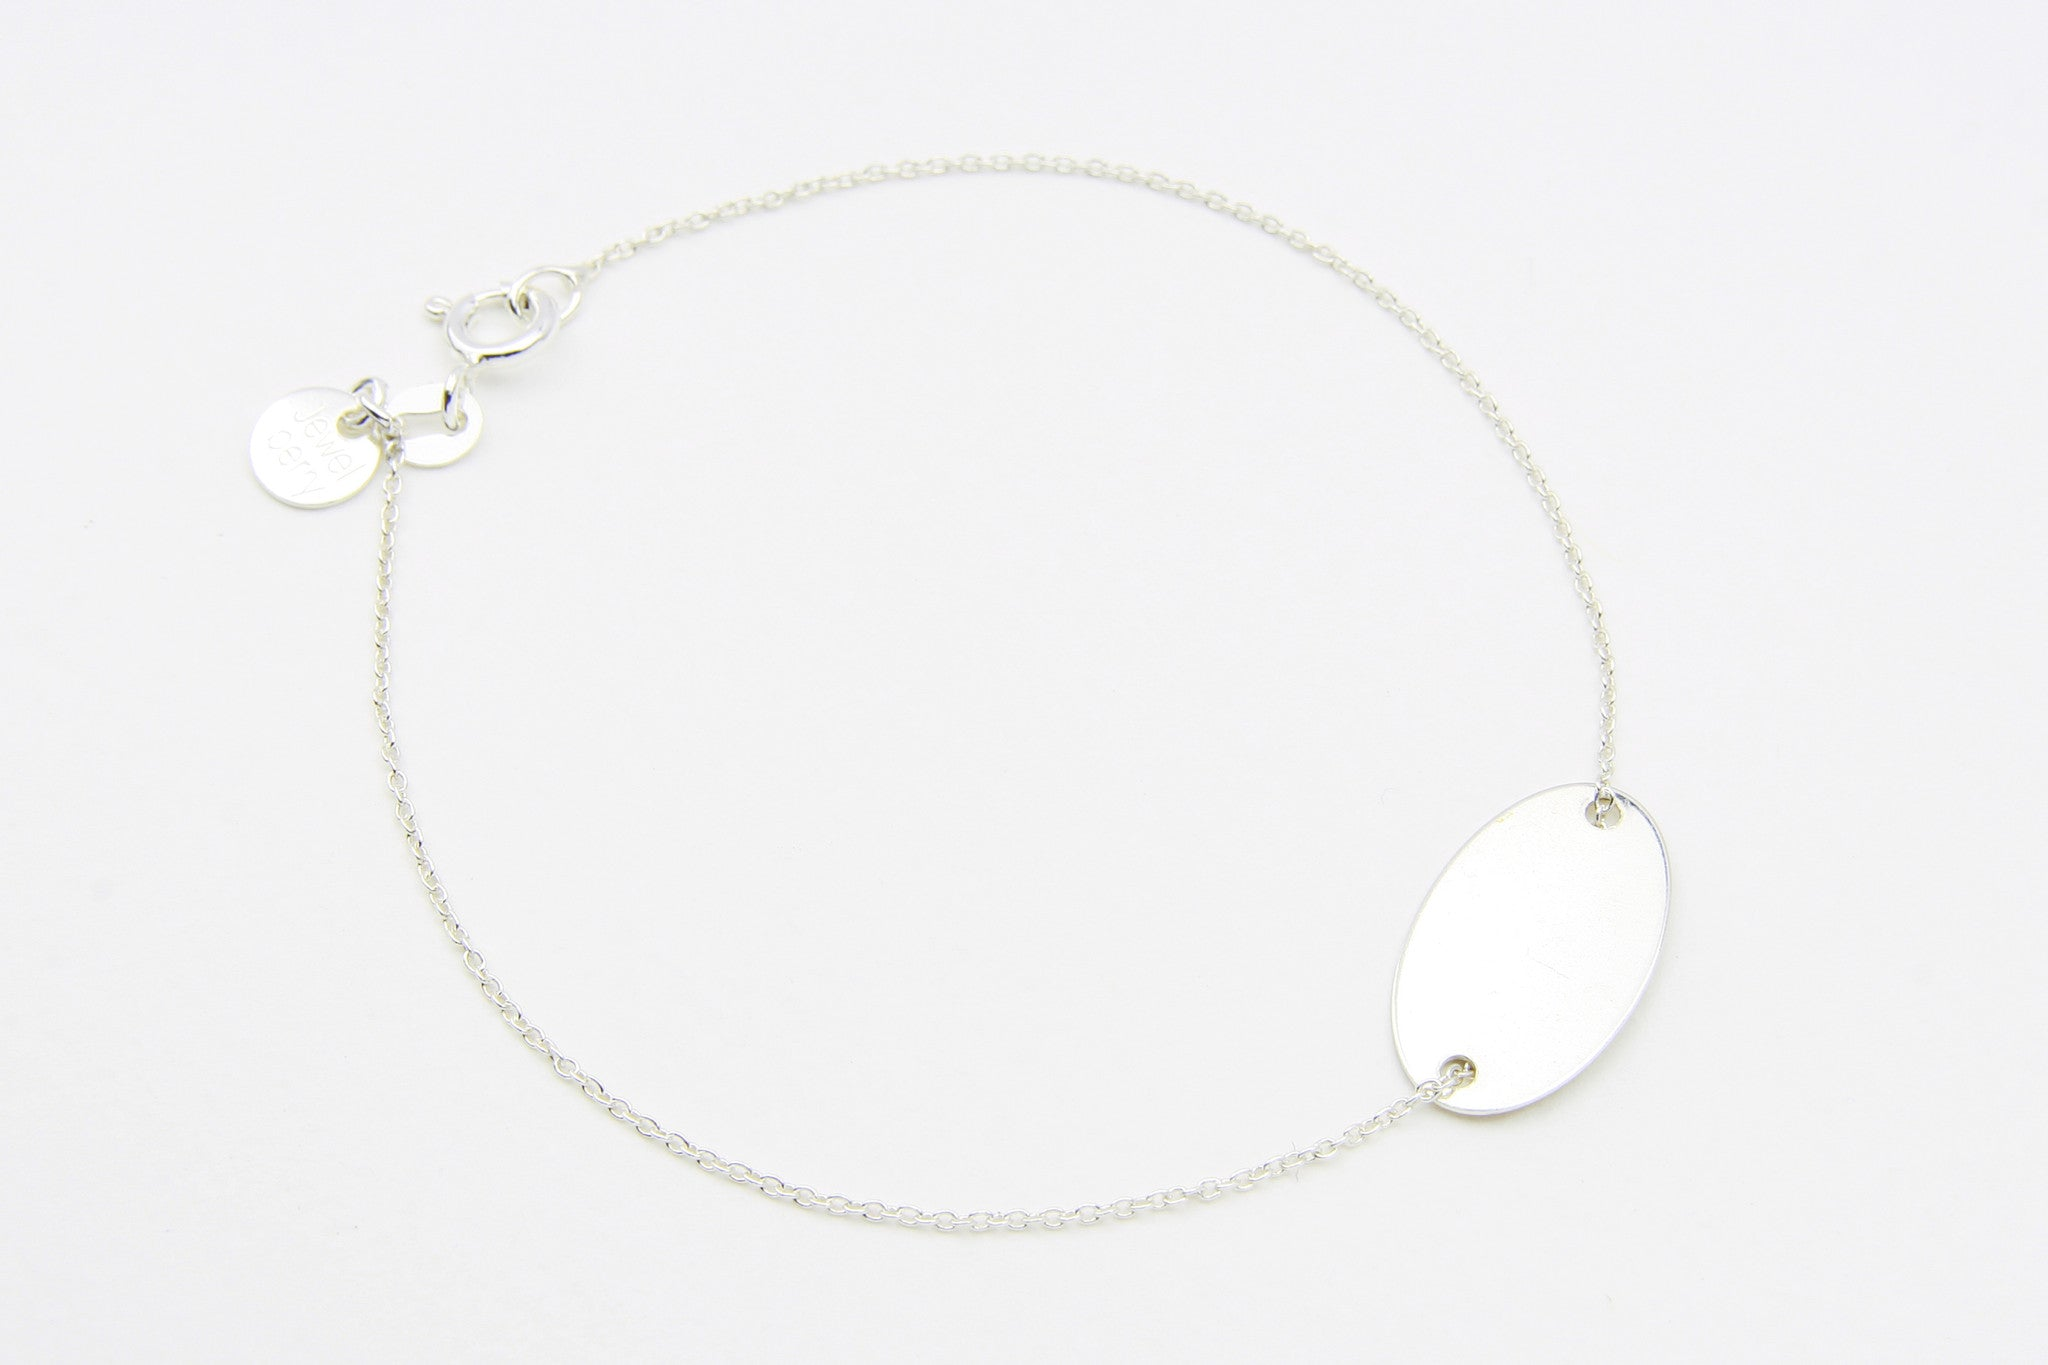 ....Armband DOUBLE DISC OVAL 925 Sterling Silber..Bracelet DOUBLE DISC OVAL 925 Sterling Silver....